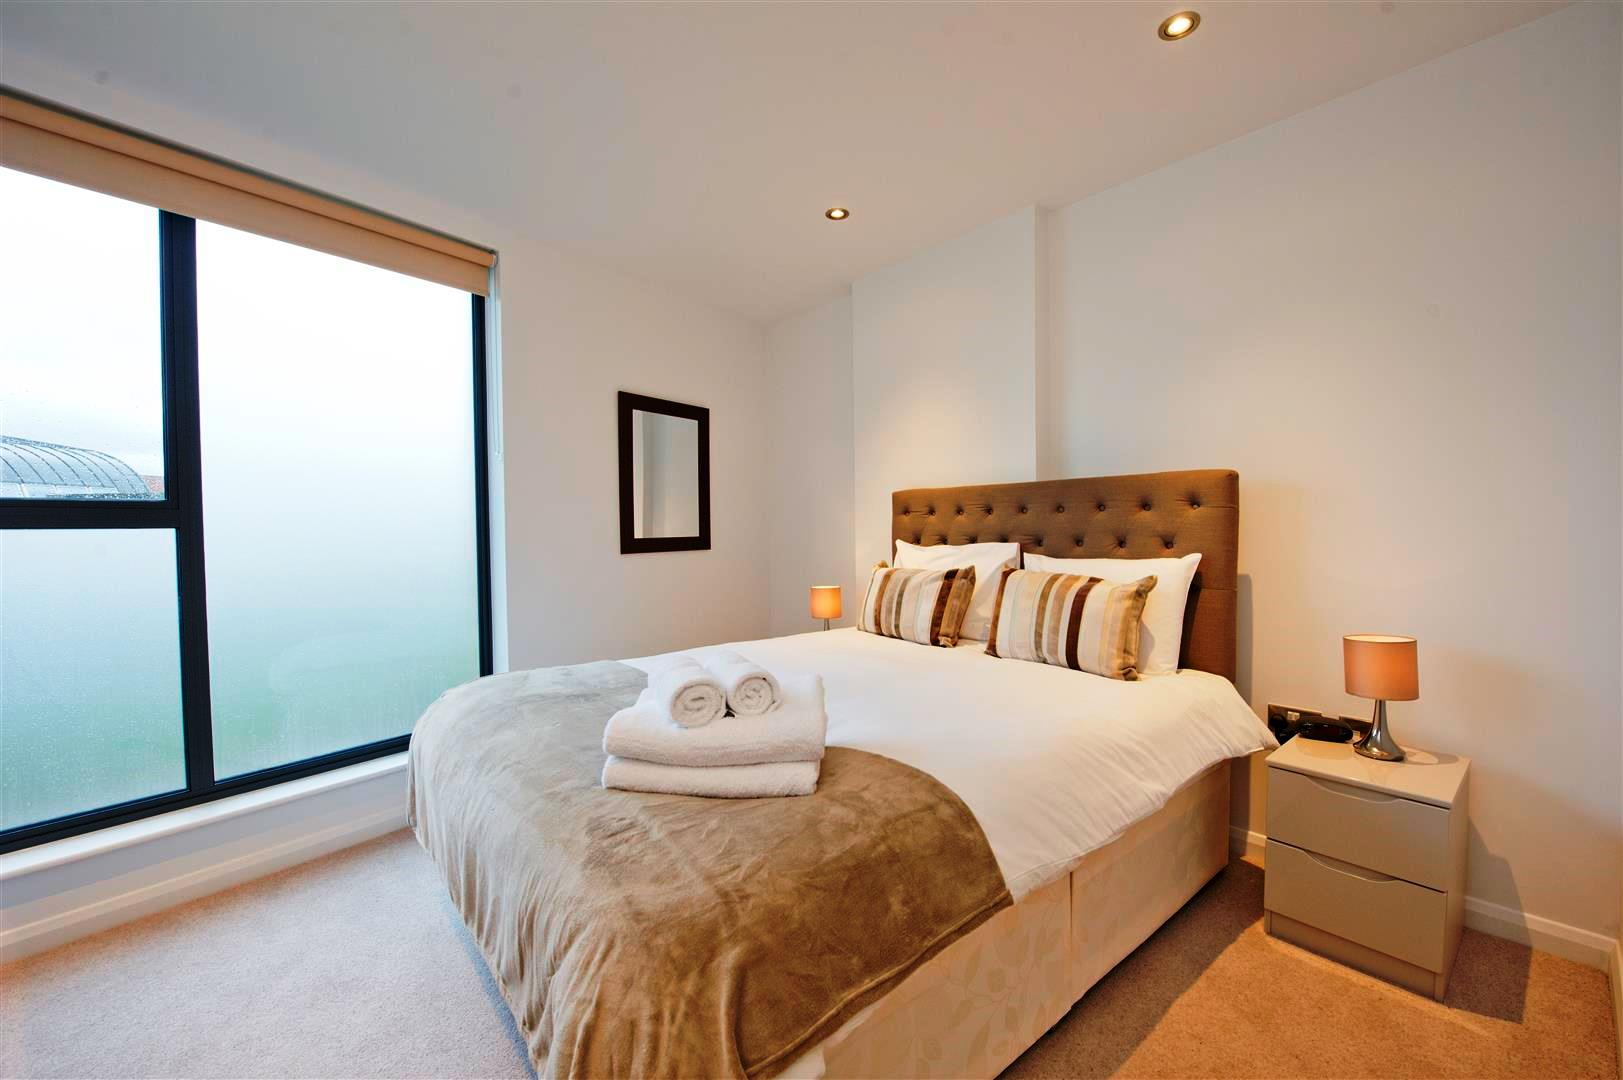 Tooley-Street-Short-Stay-Apartments-London-Bridge---Corporate-Accommodation-London---Urban-Stay---bedroom-2